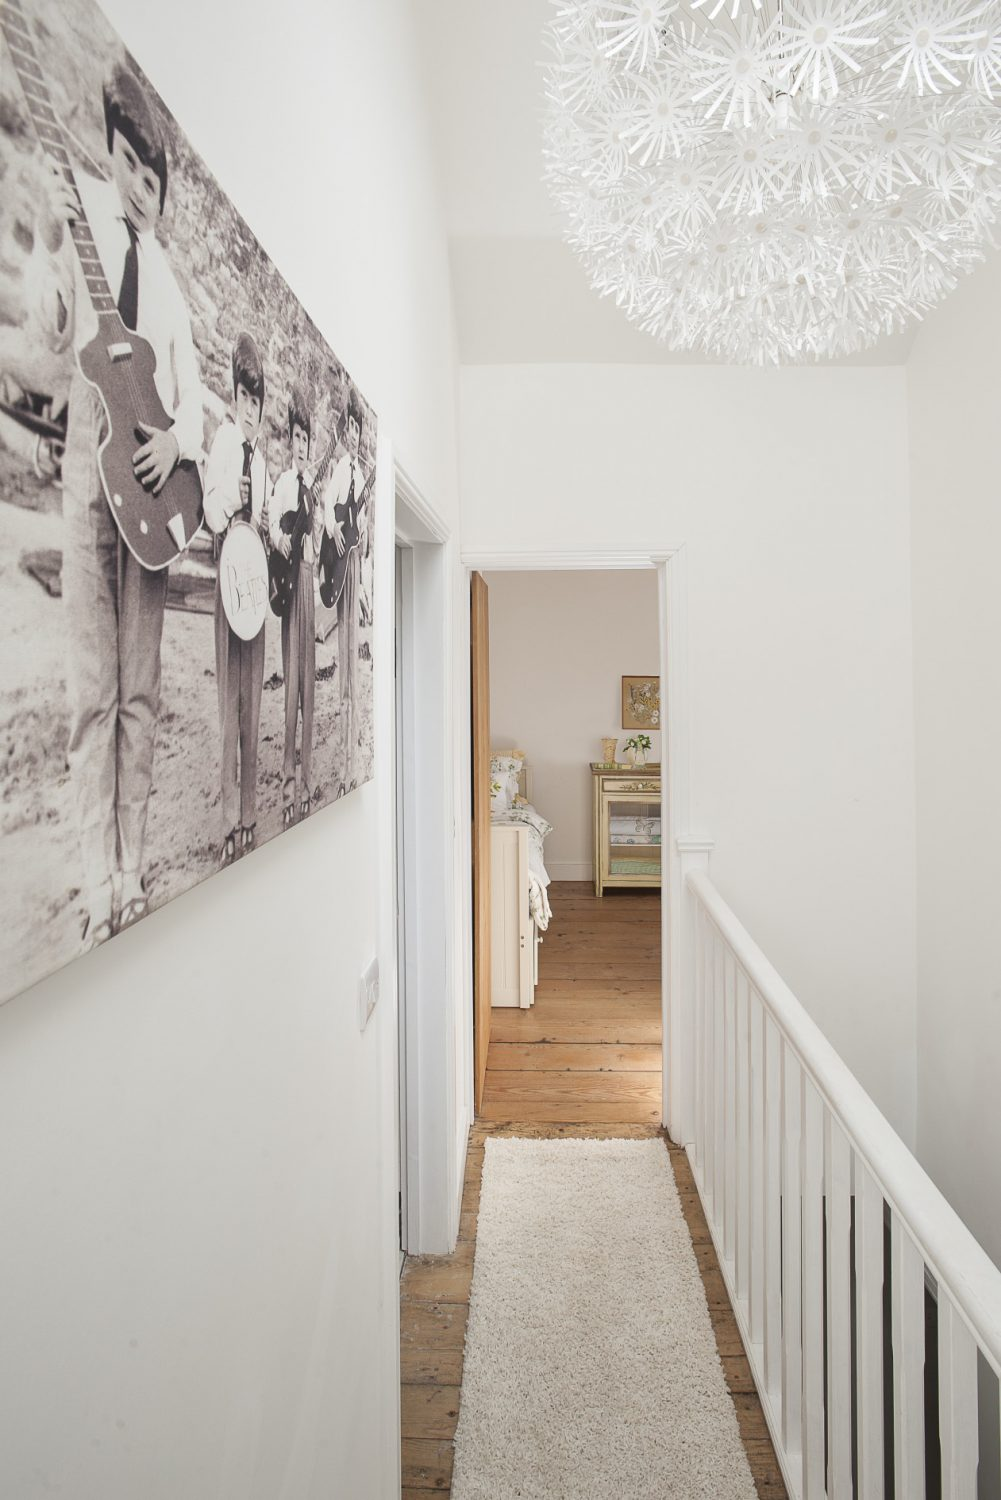 Up the stairs – painted very simply in white Annie Sloan furniture paint – you come to a wonderfully light and airy landing with raised and vaulted ceilings and home to another stunning mega light fitting – this one from Ikea